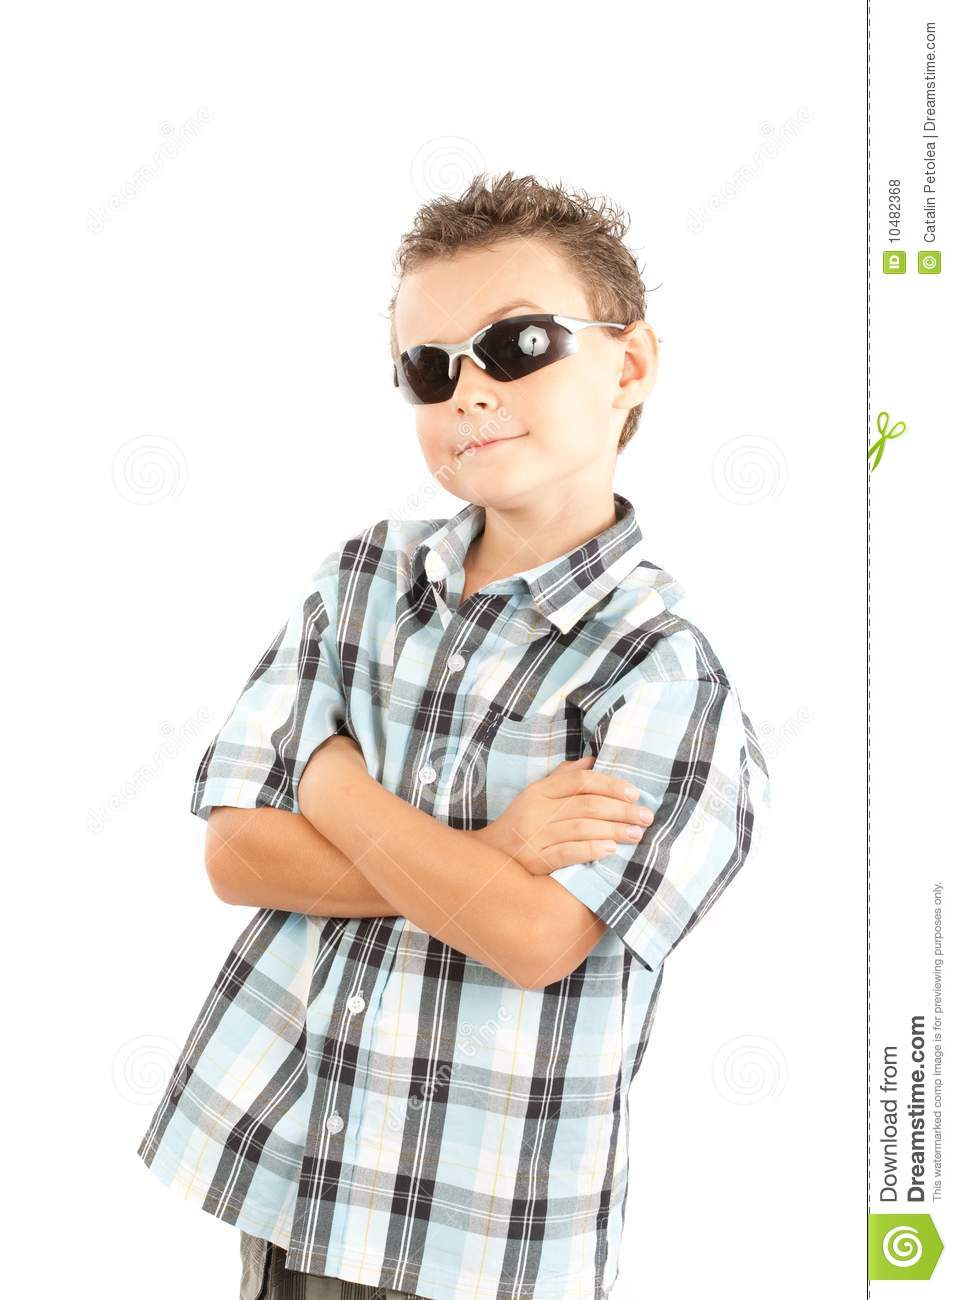 Cool Kid Royalty Free Stock Photos Image 10482368